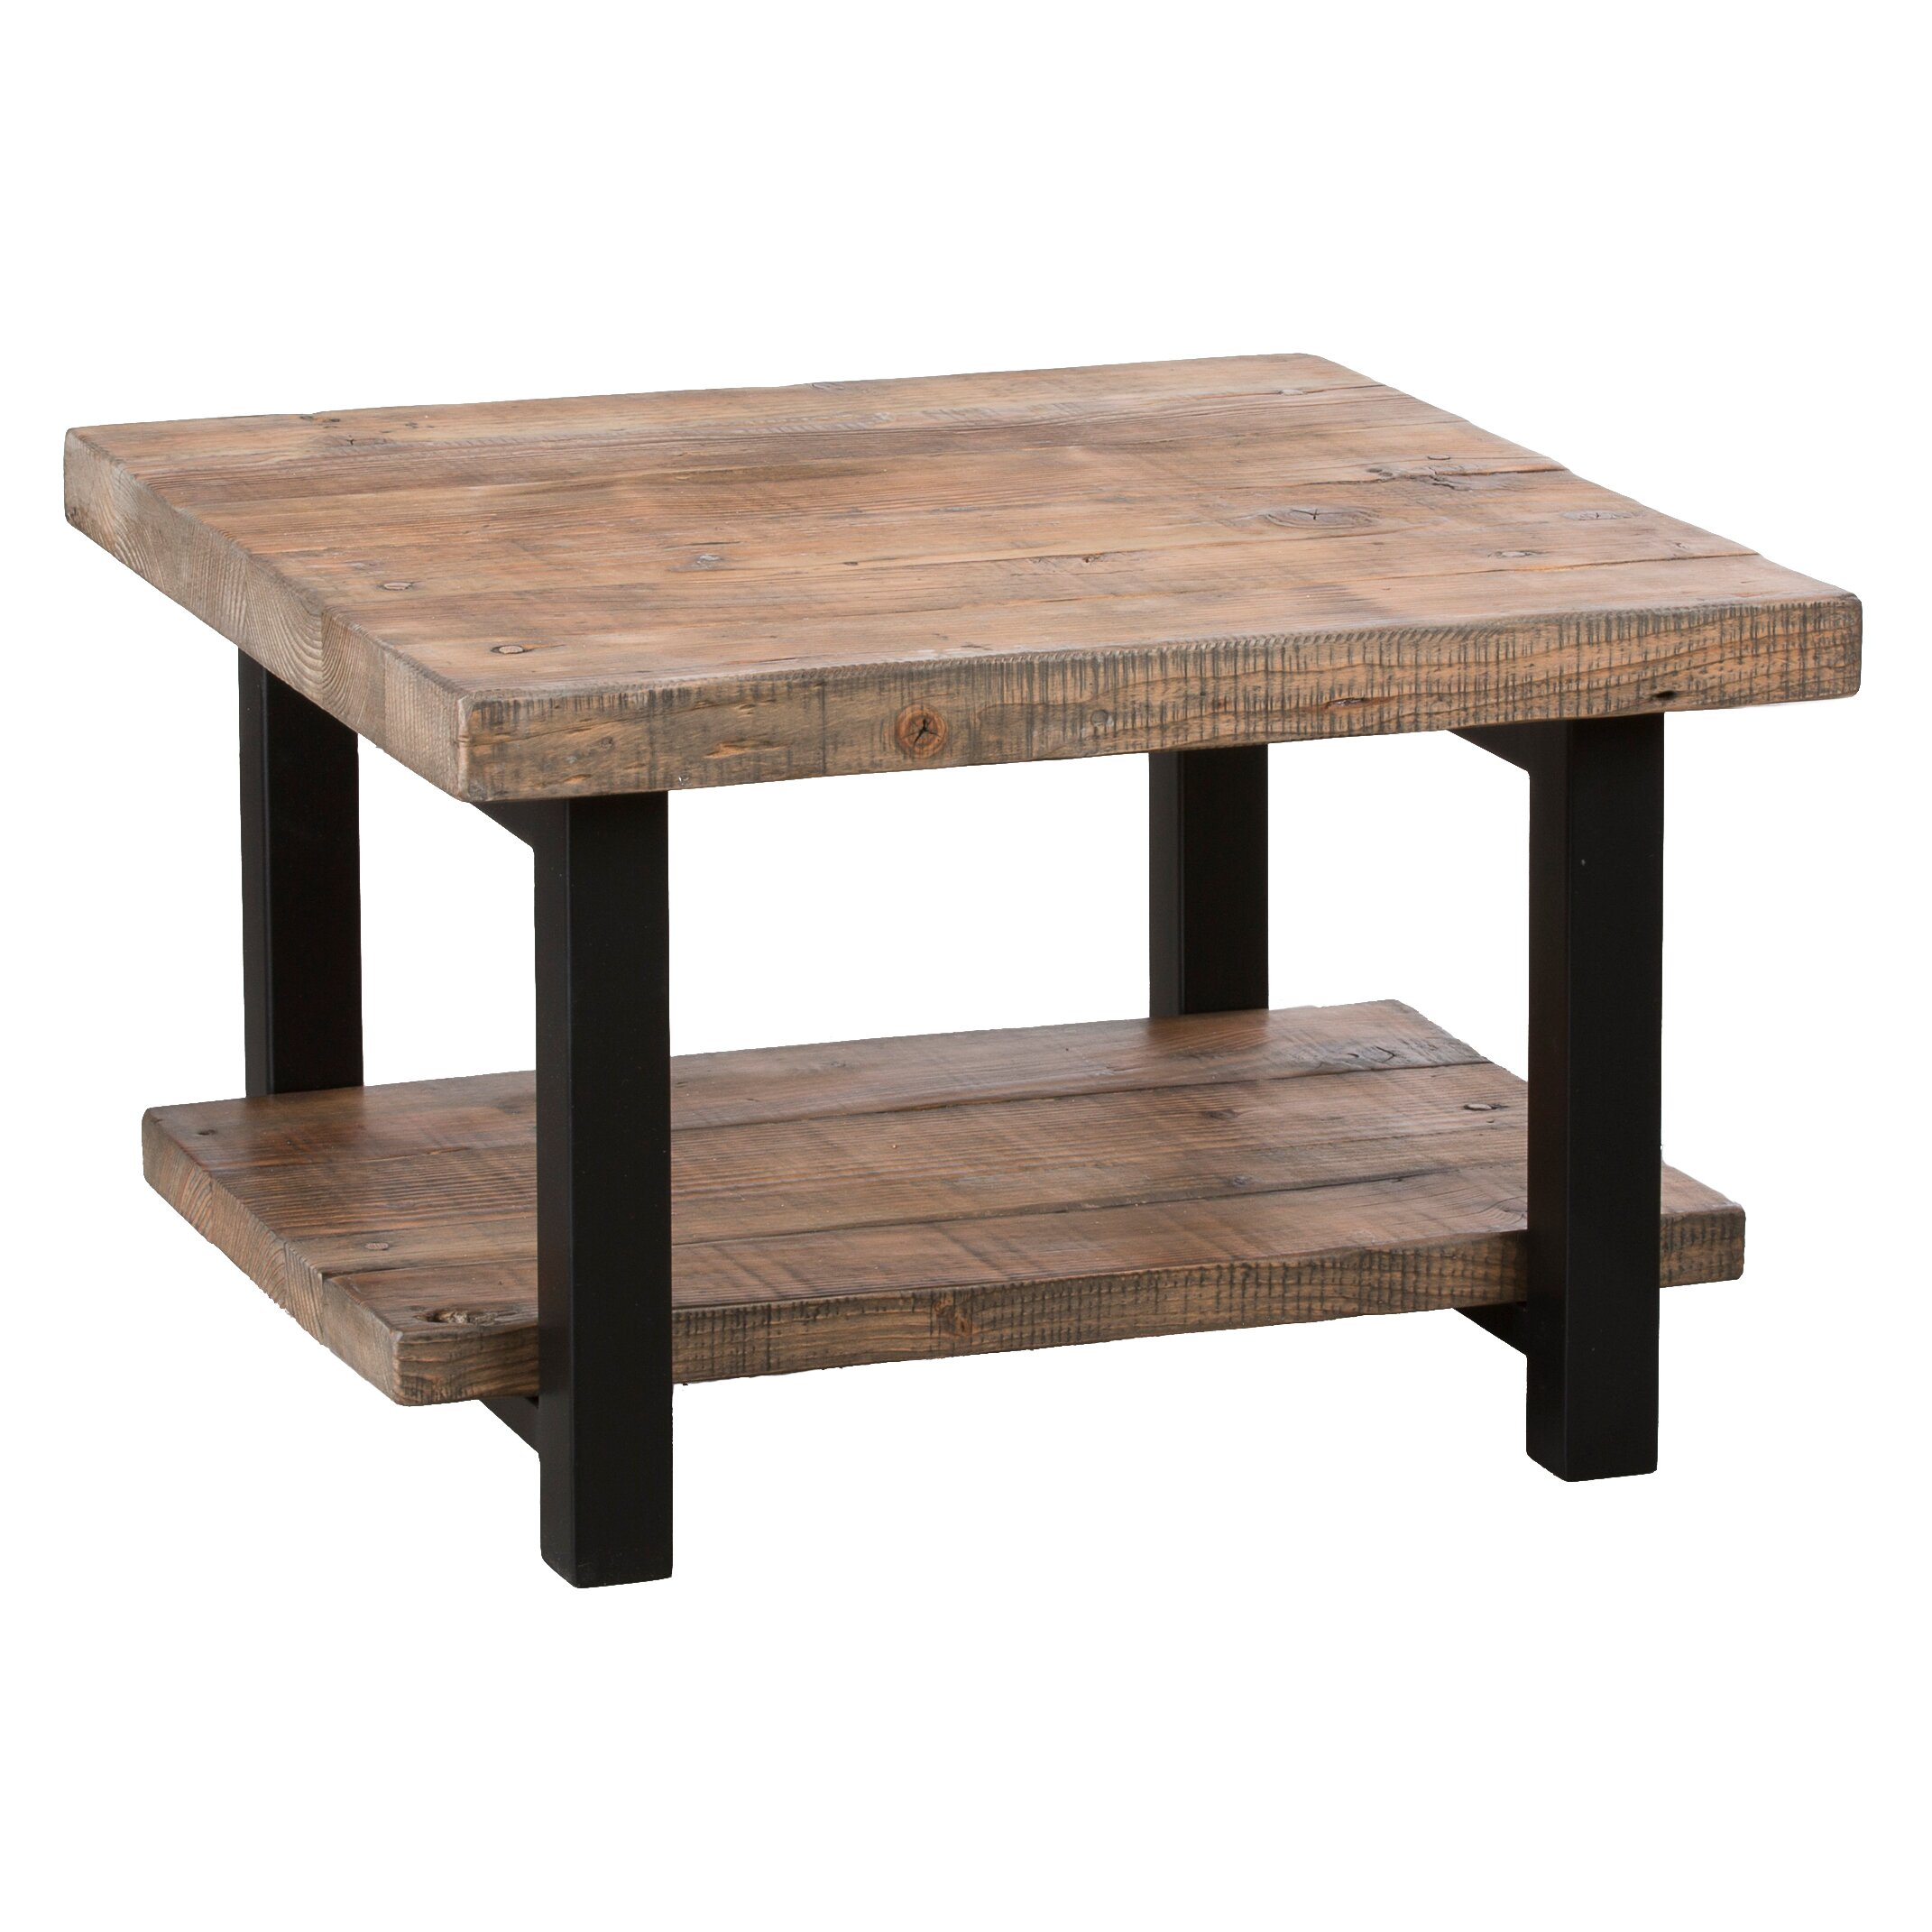 Loon Peak Somers 27 Reclaimed Wood Square Coffee Table Reviews Wayfair